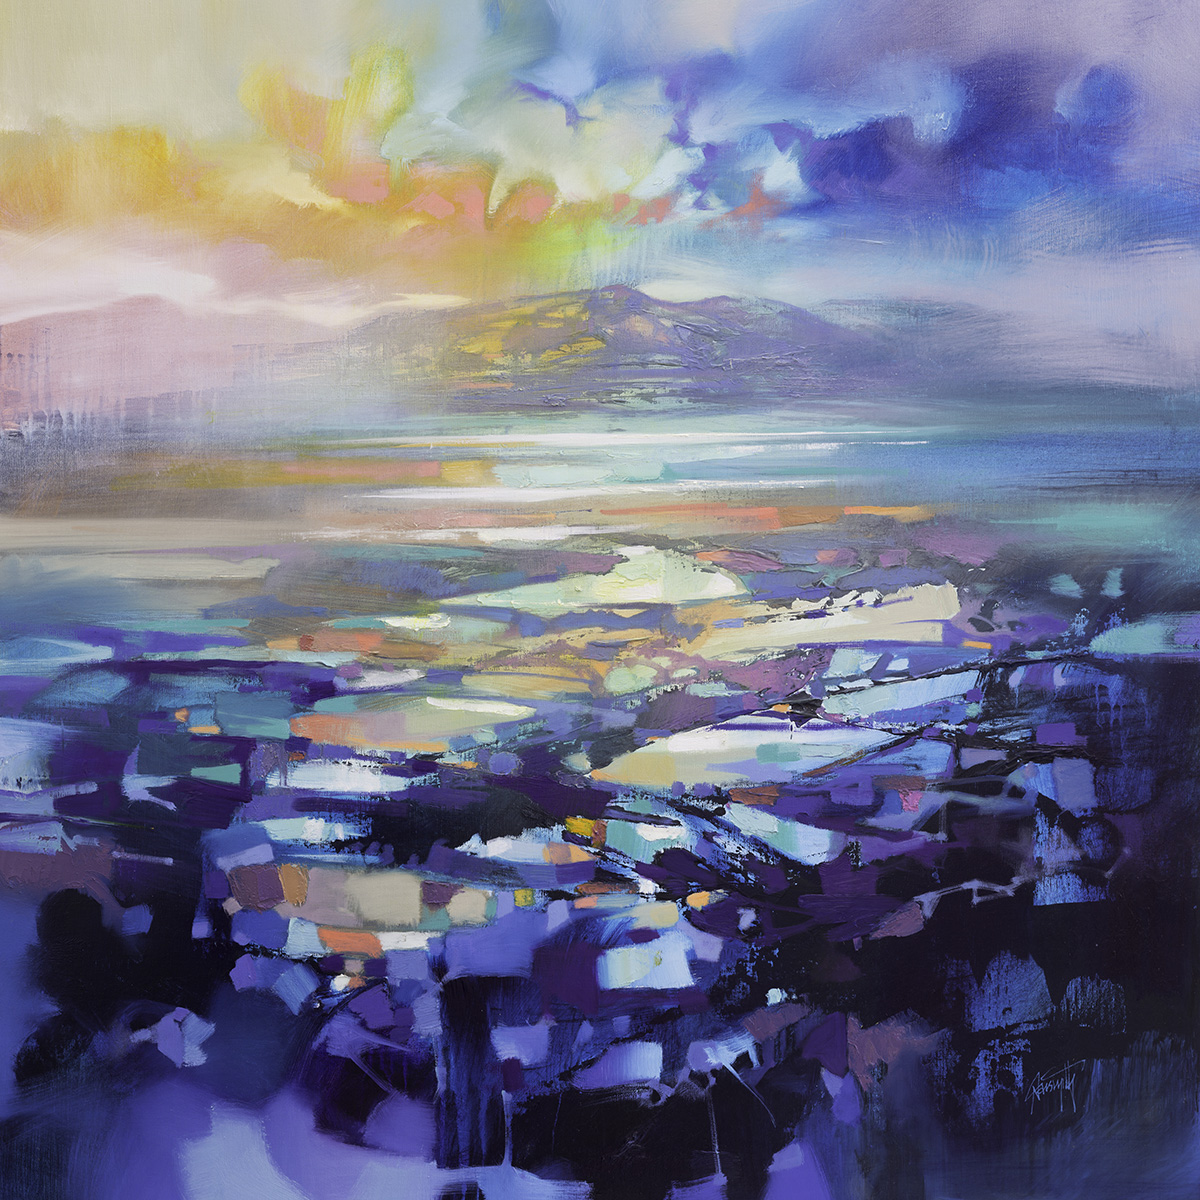 Hebridean Resonance II by Scott Naismith